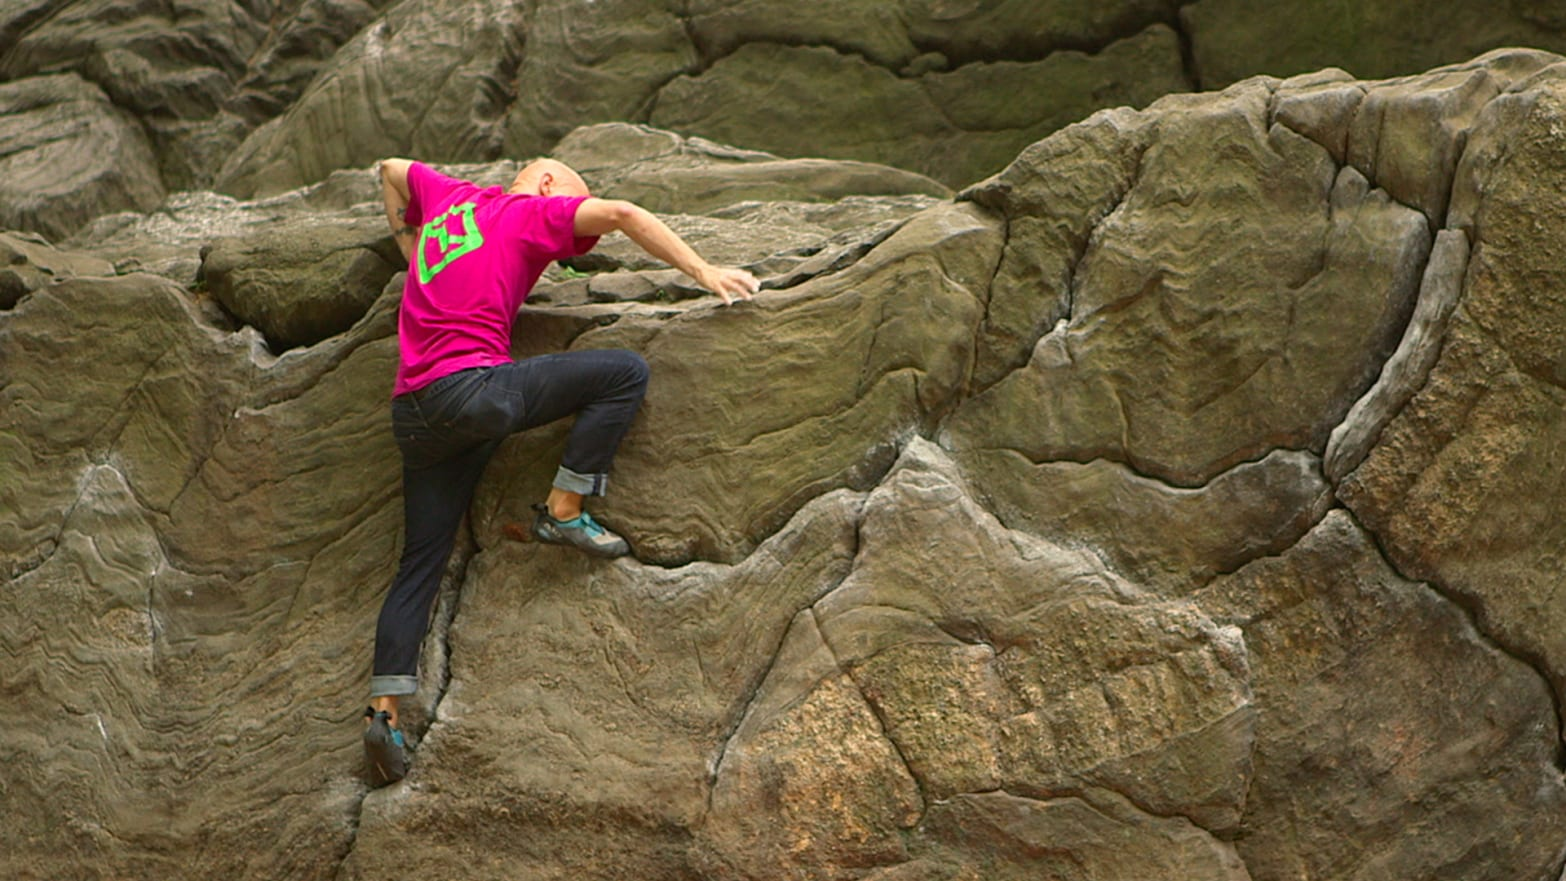 Rock Climbing In The Middle Of New York City's Central Park